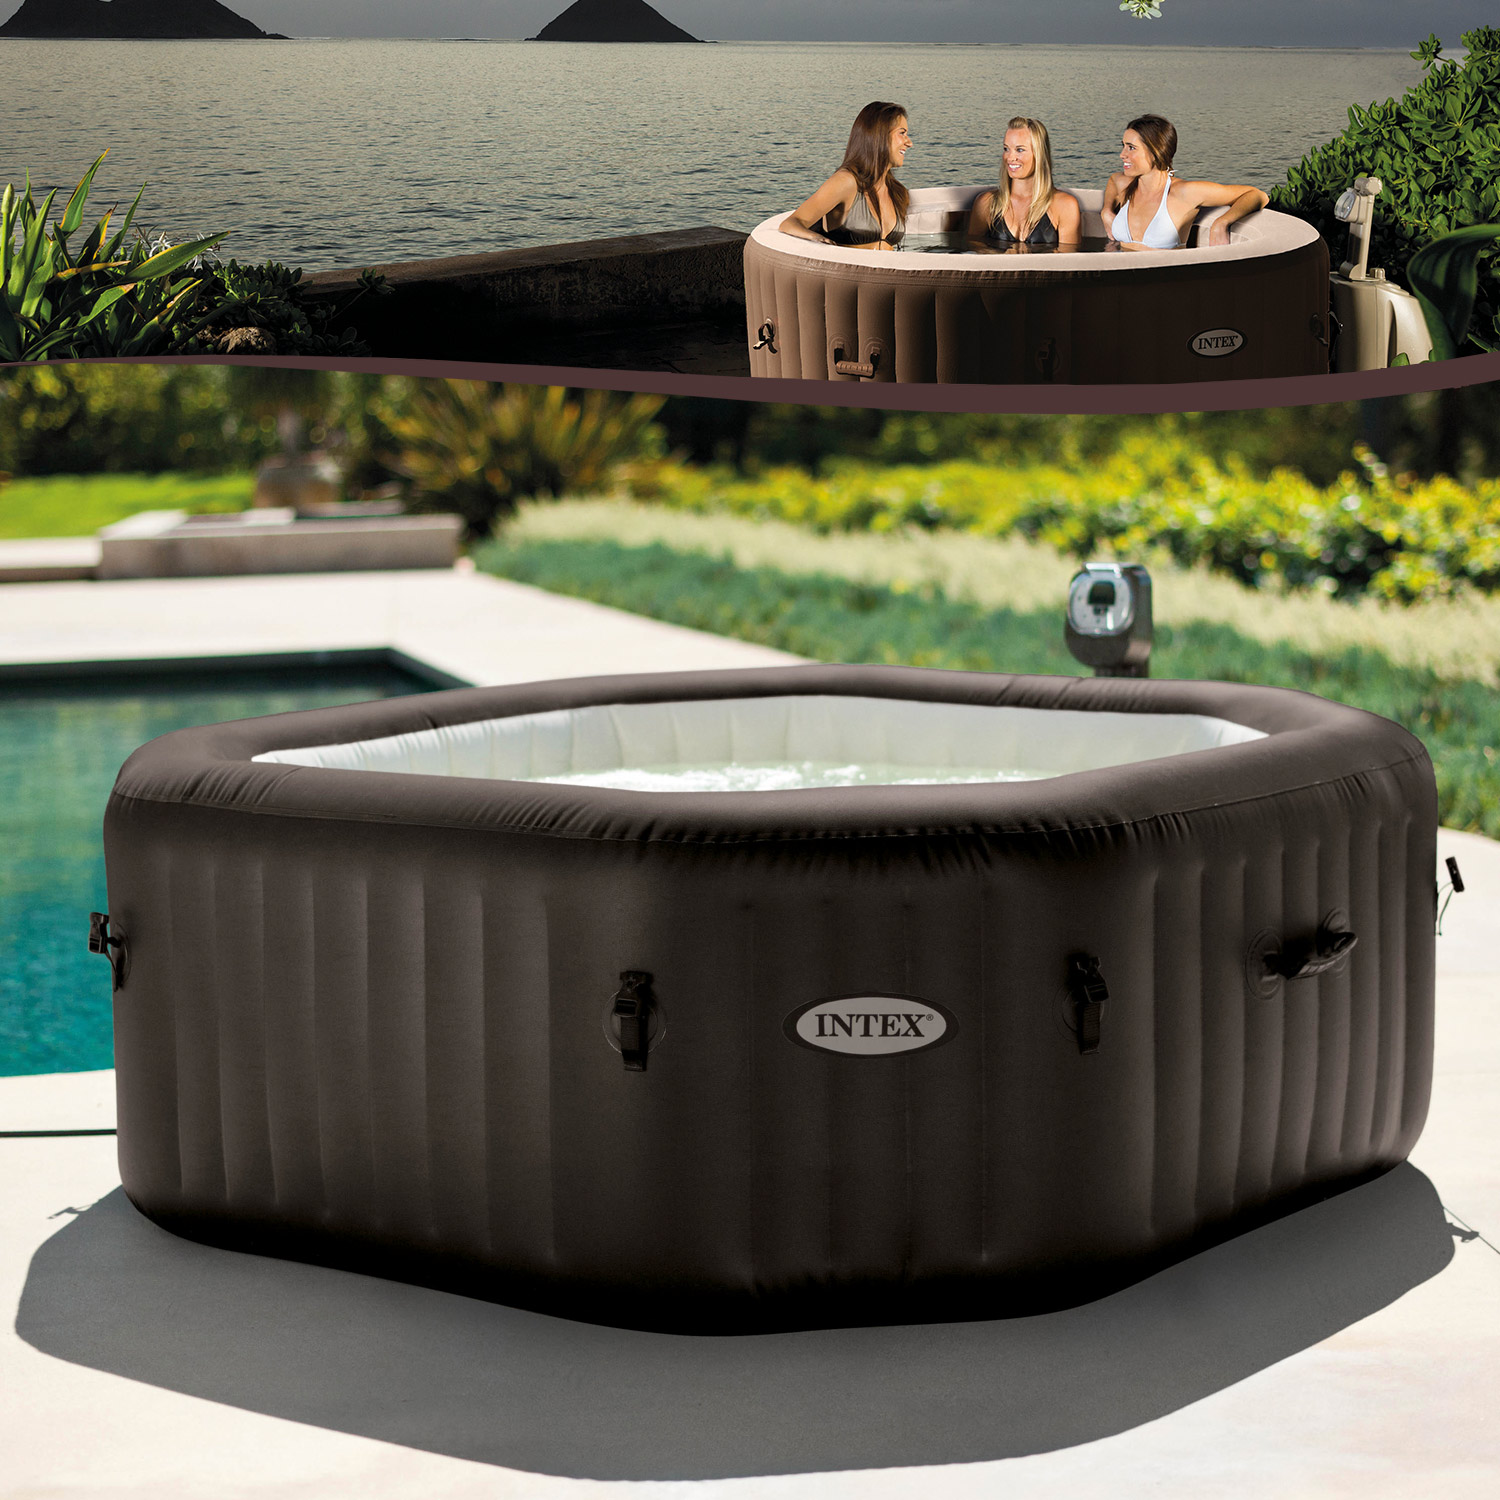 intex whirlpool pure spa octagon jet mit kalkschutzsystem. Black Bedroom Furniture Sets. Home Design Ideas